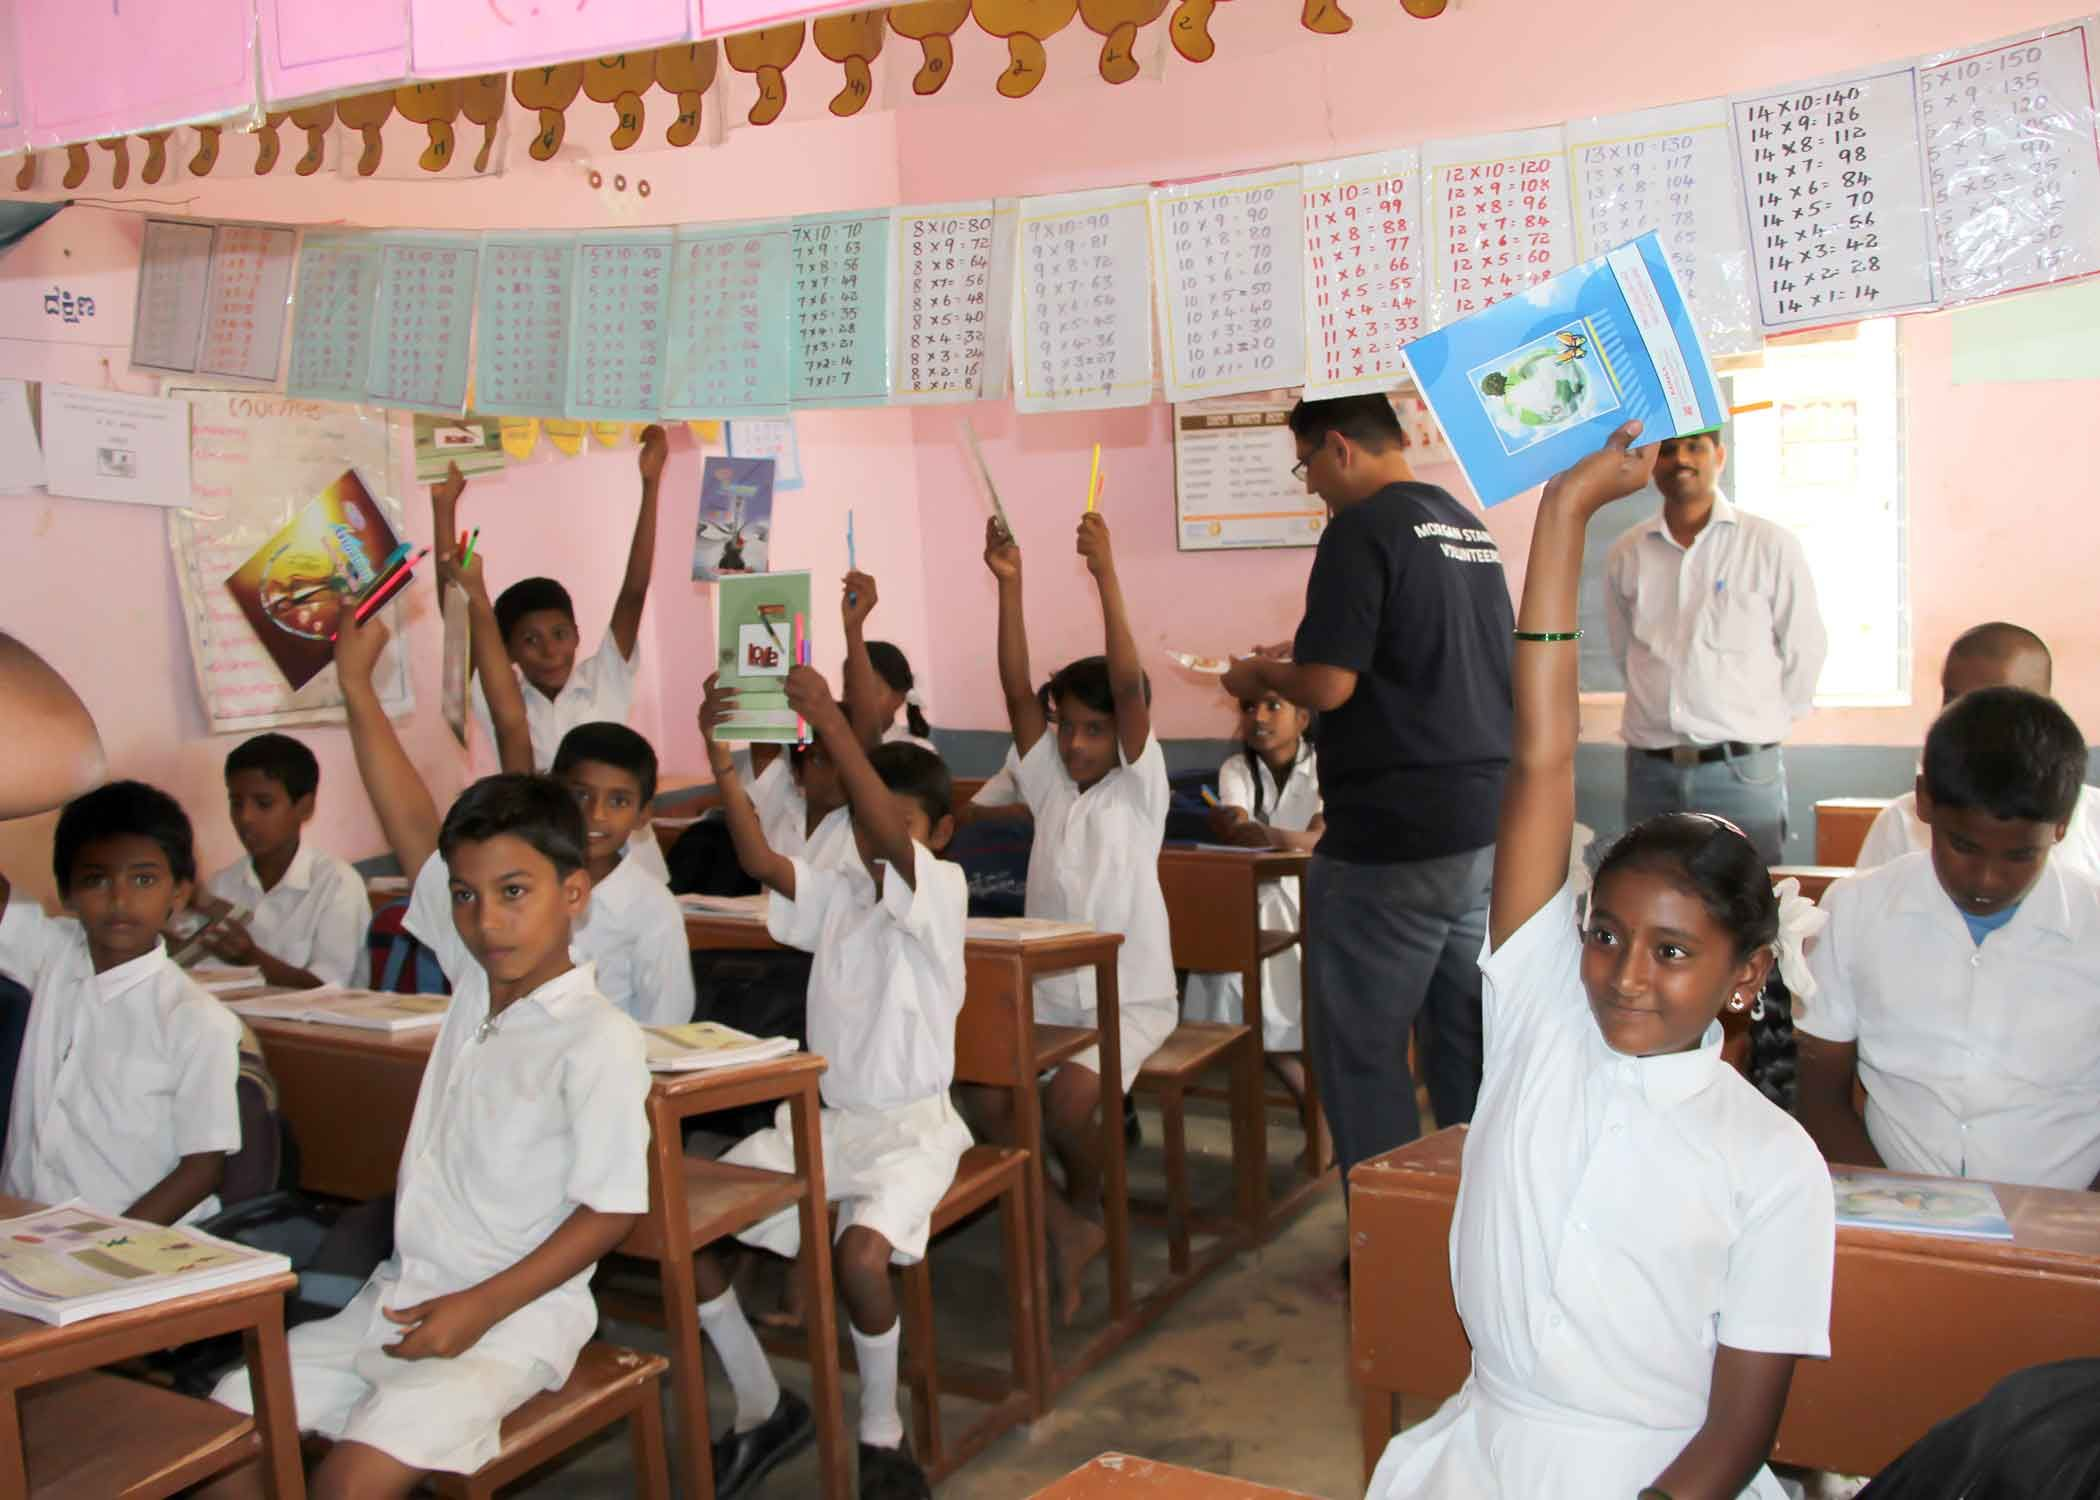 Children participating in a classroom activity—an